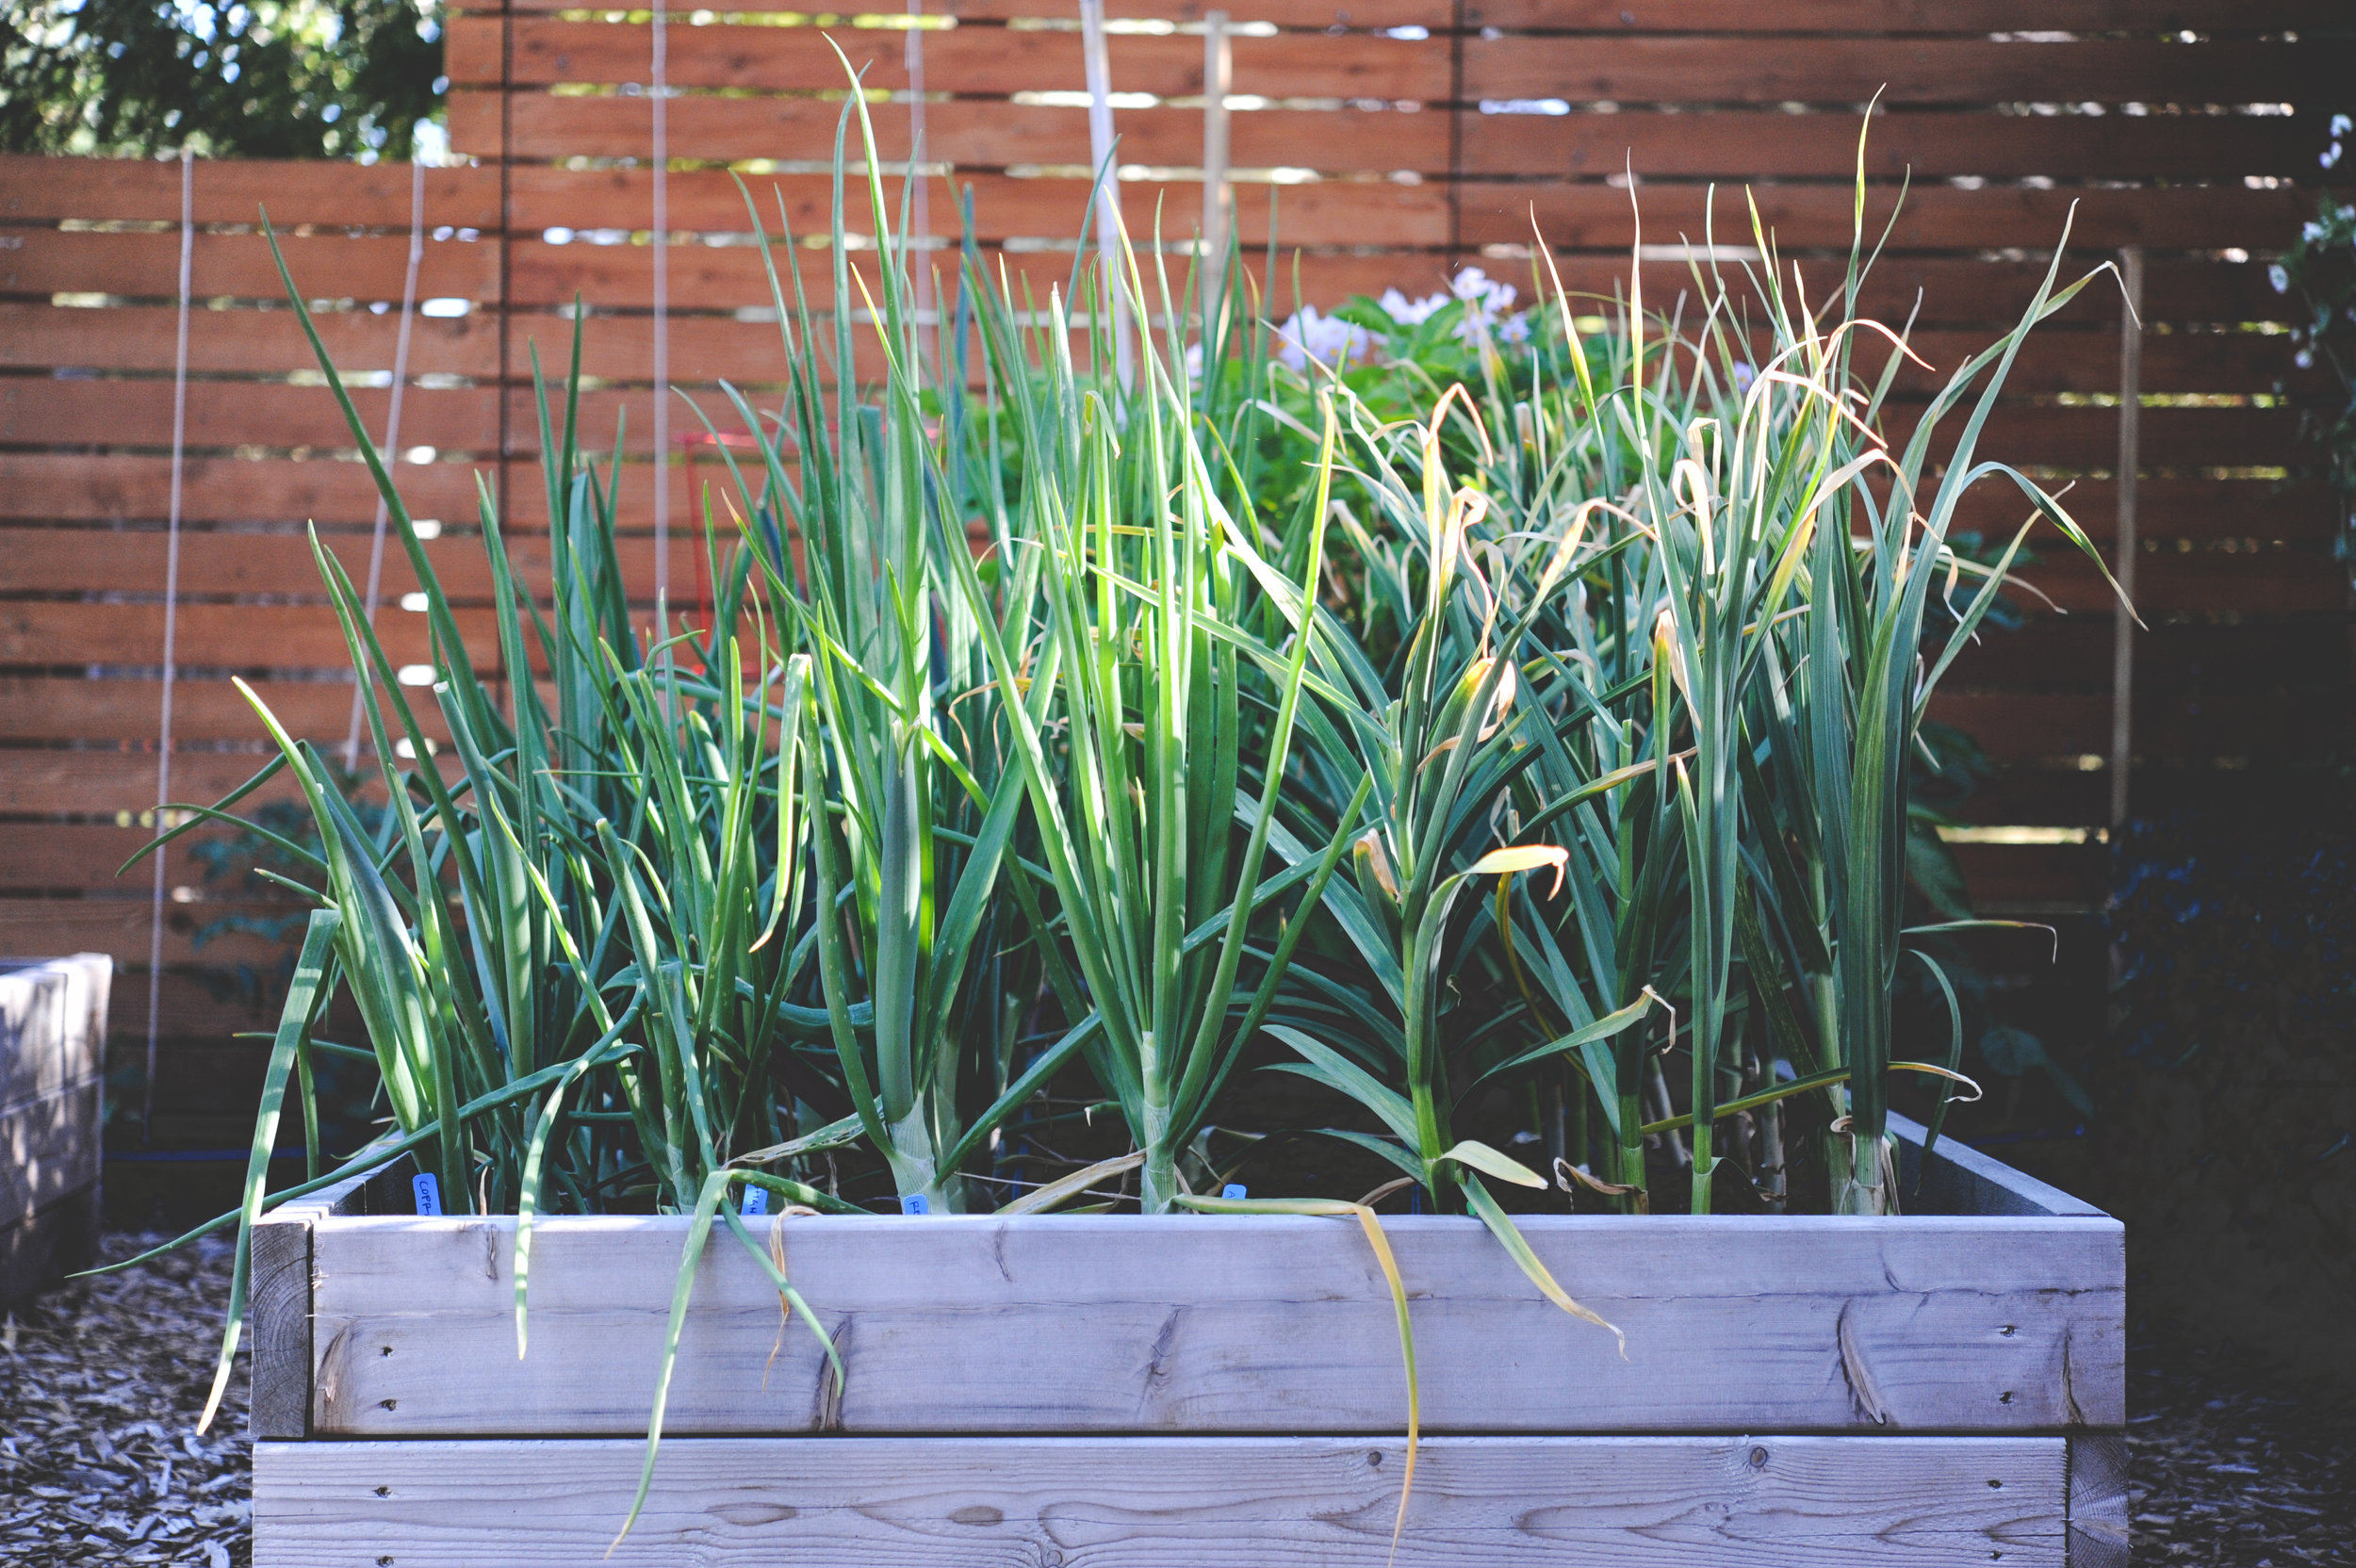 Plants of the onion family